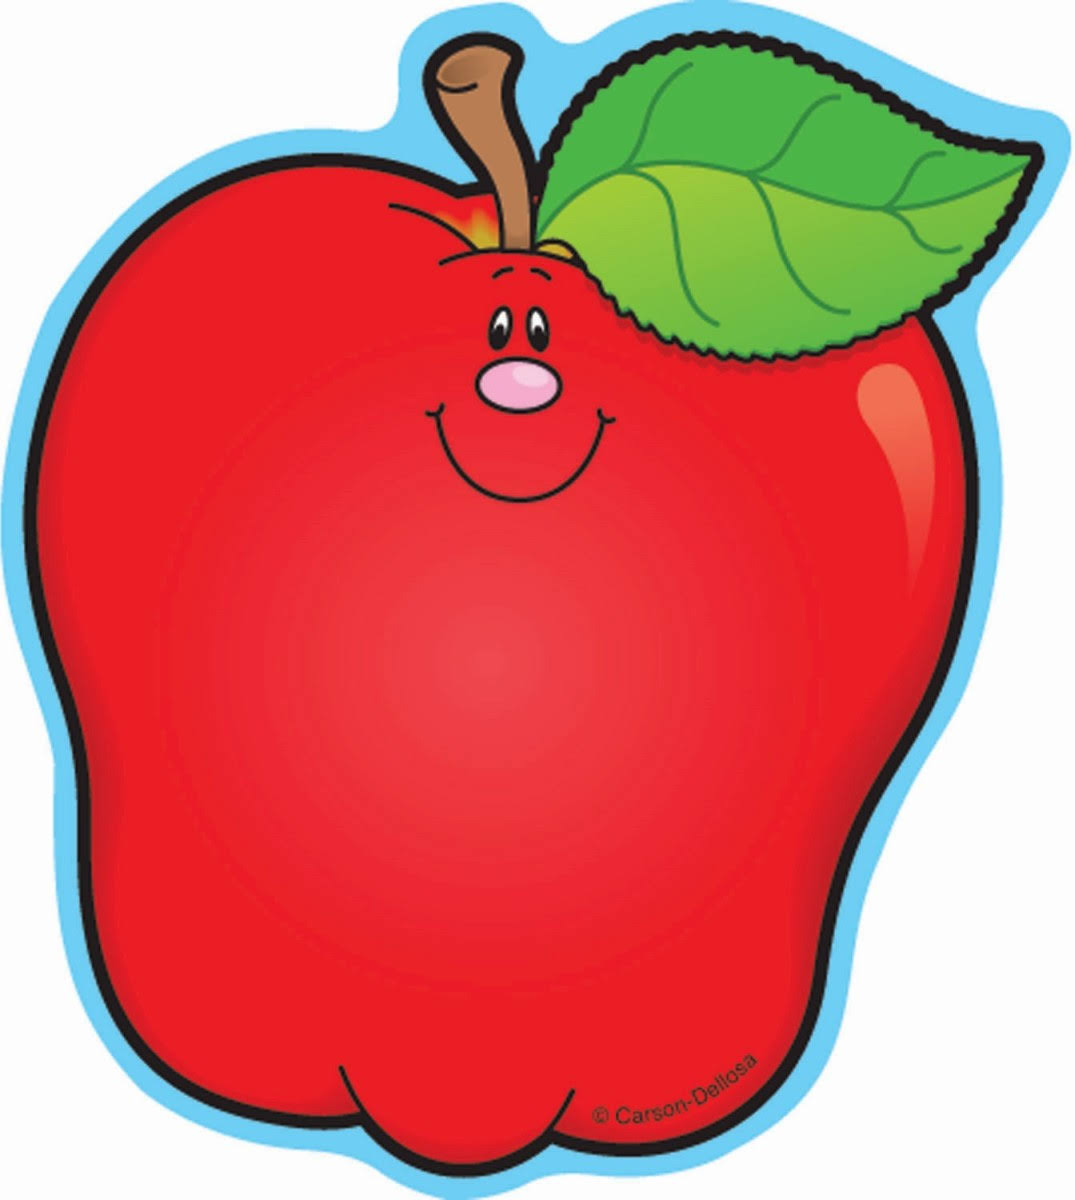 Carson-Dellosa Publishing Apples Mini Cut-Outs